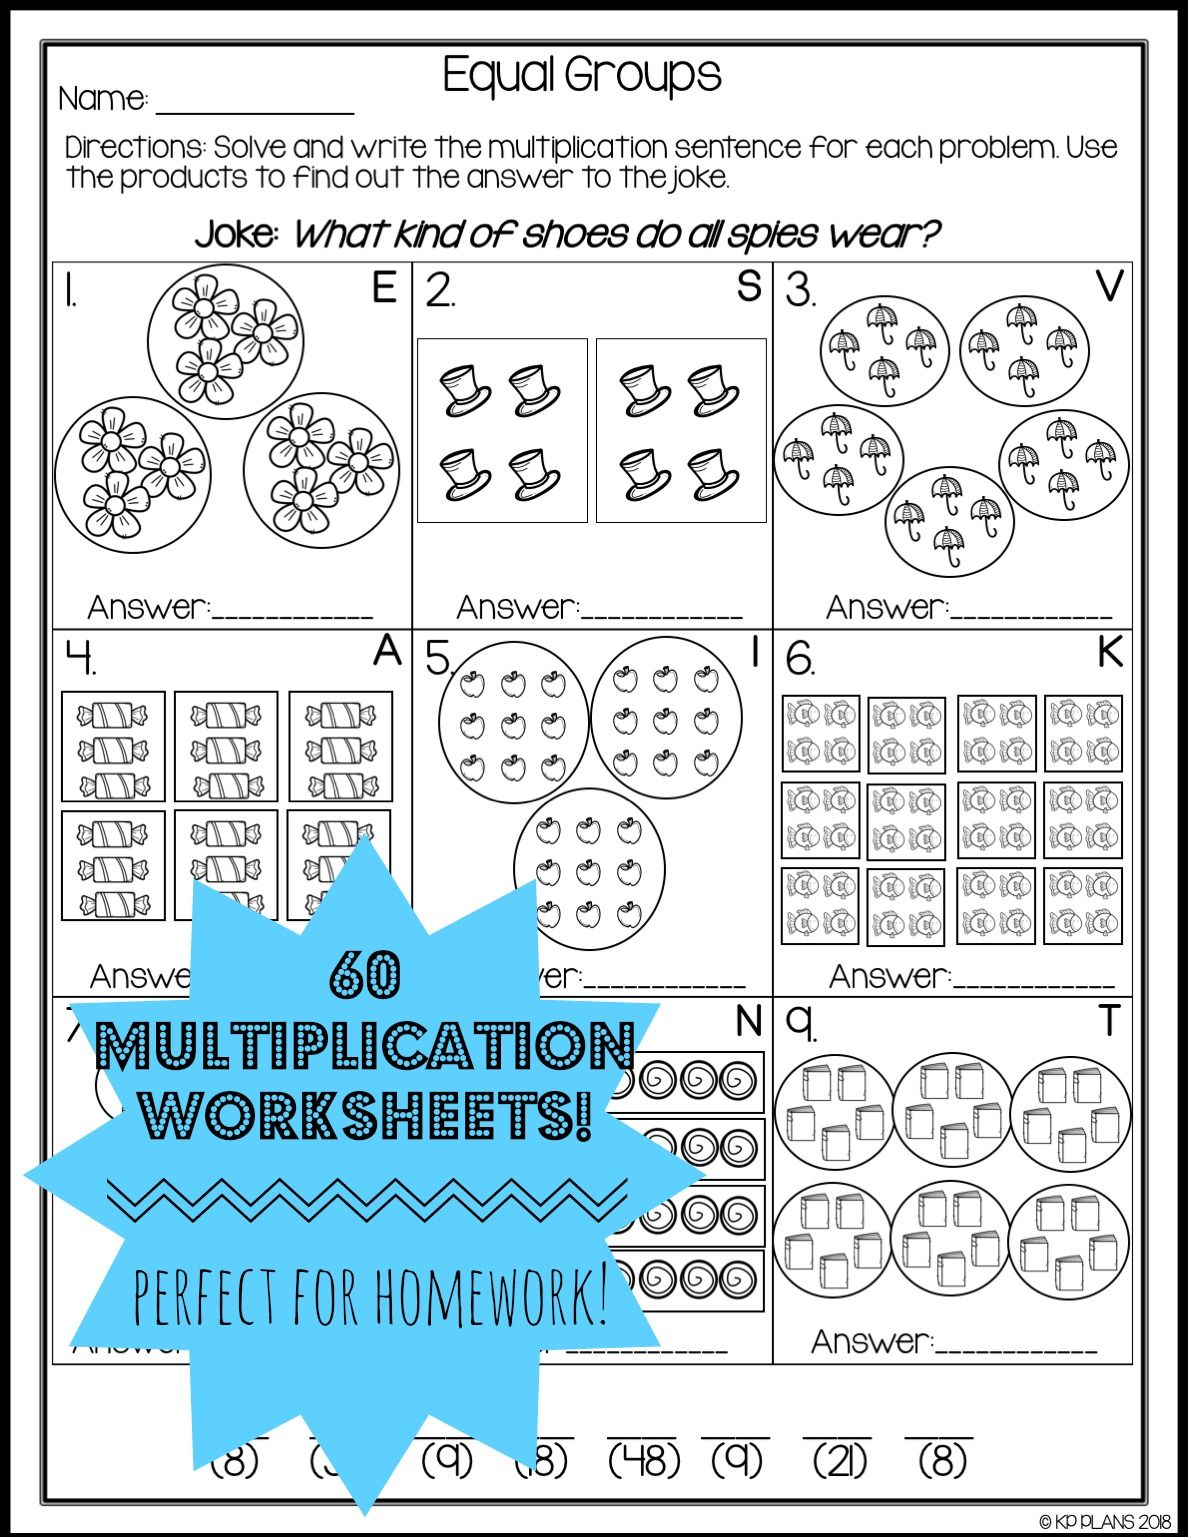 Multiplication Strategies Worksheets | Multiplication | Pinterest ...